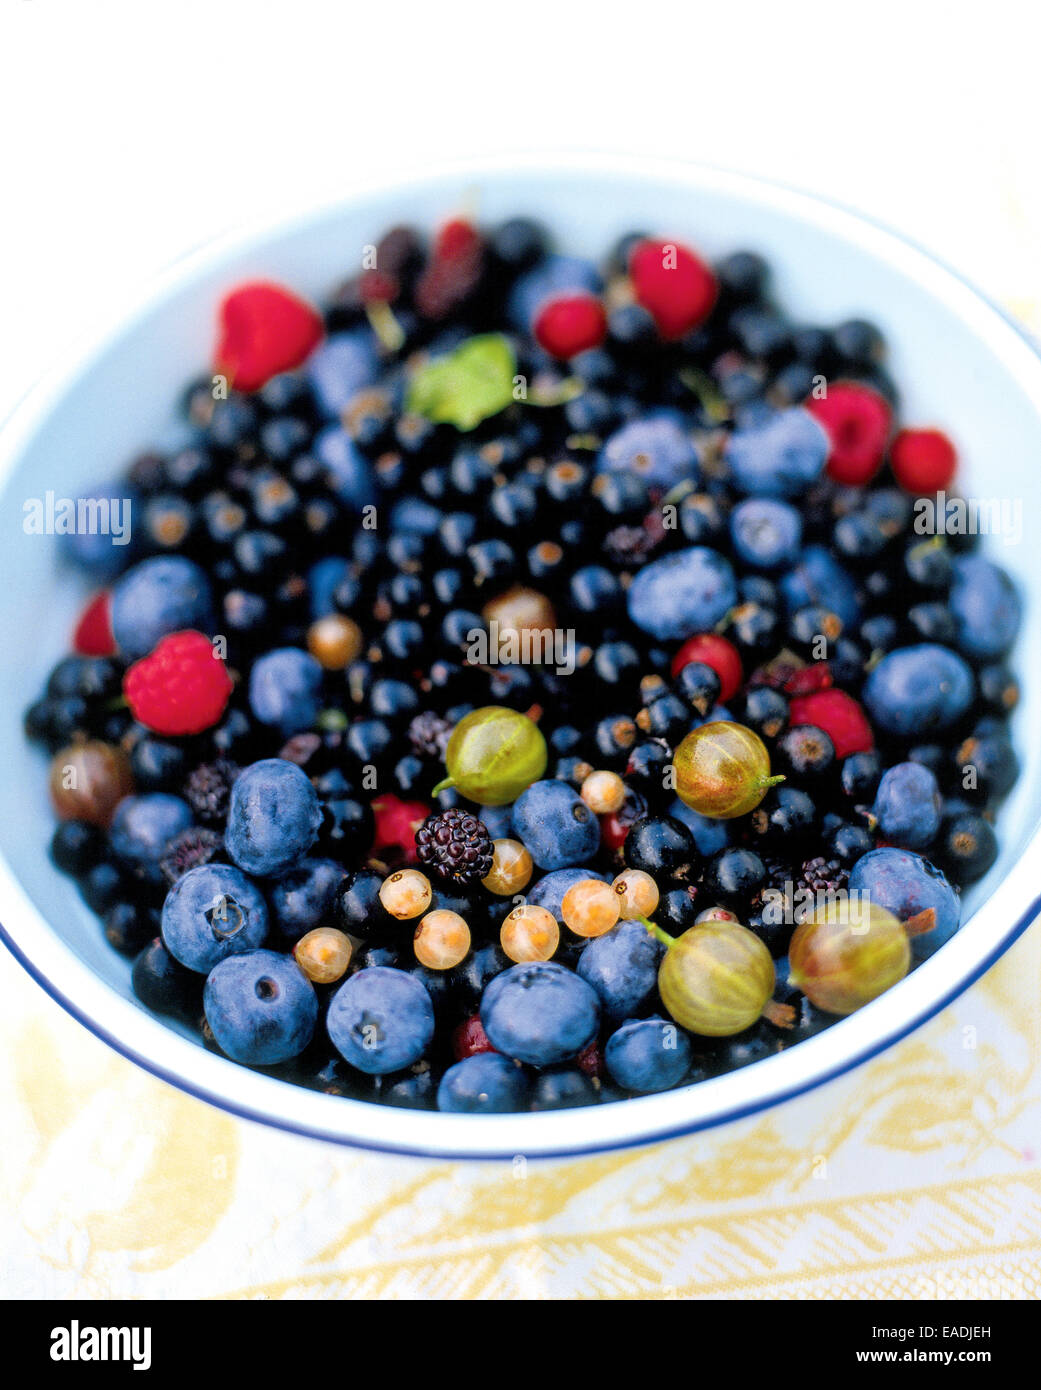 Various Mixed berries in a bowl - Stock Image